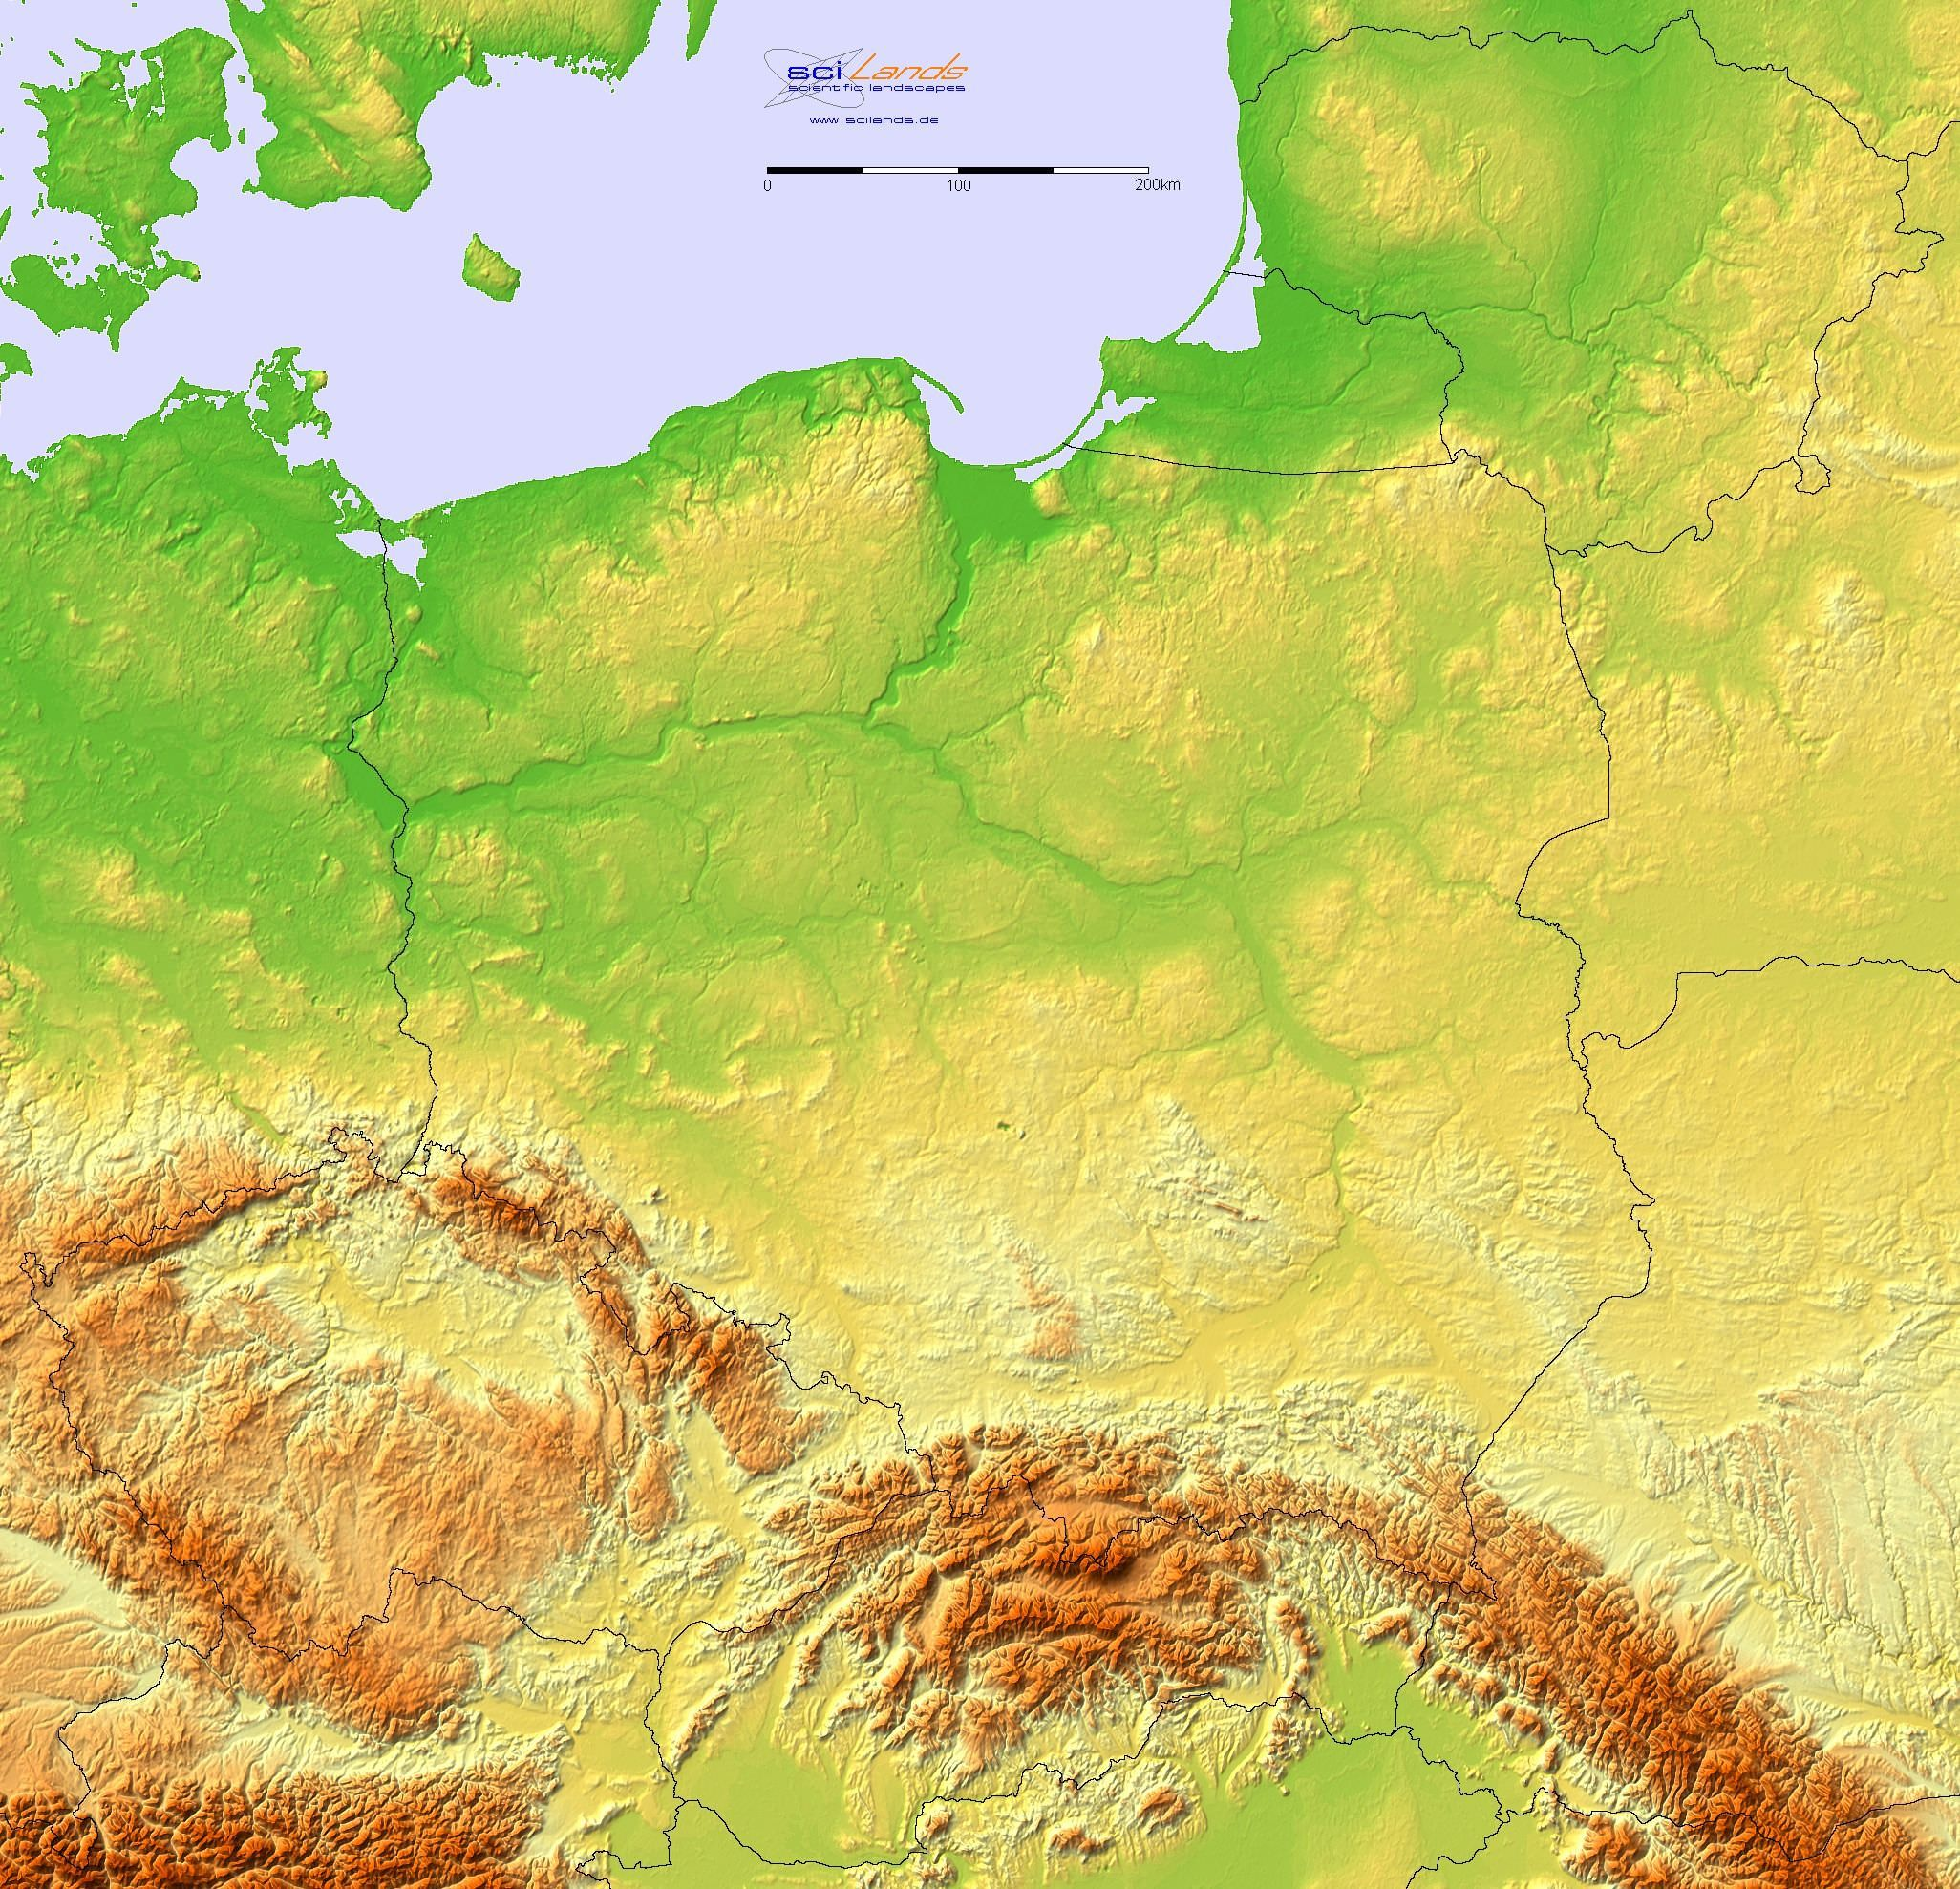 Detailed Terrain Map Of Poland And The Surrounding Region